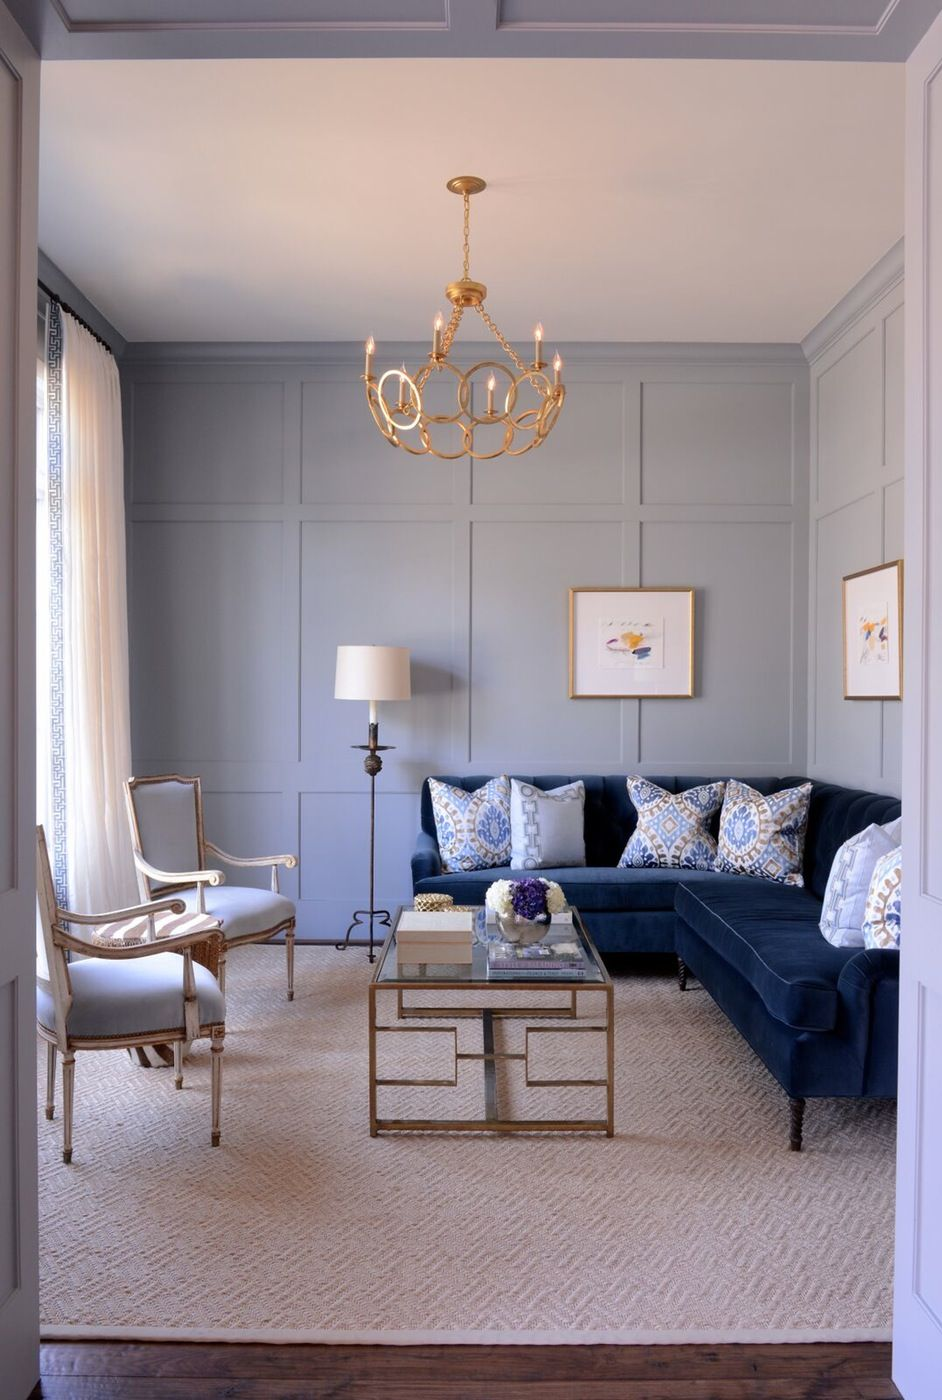 Pin by Dering Hall on Living Rooms  Blue couch living